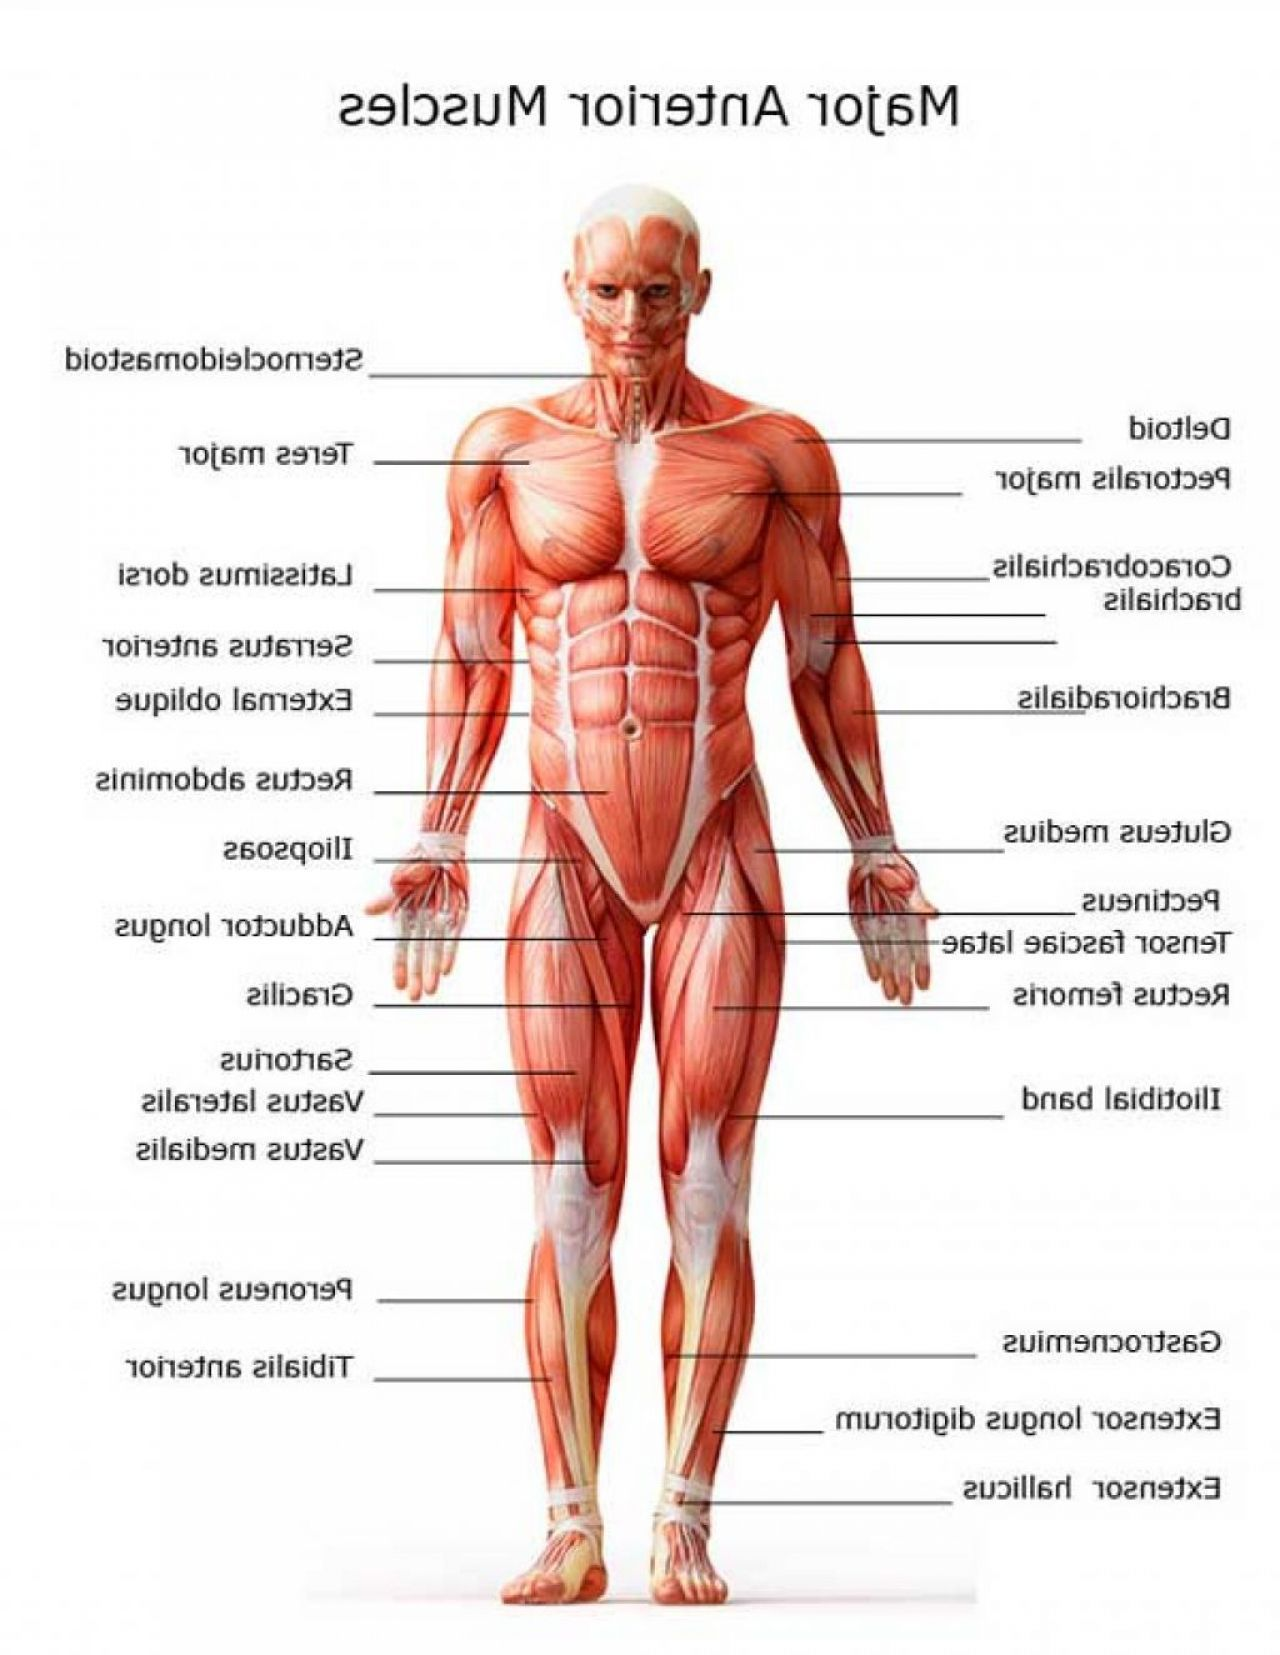 Muscle Diagram Human Body | Anatomy | Pinterest | Human body ...